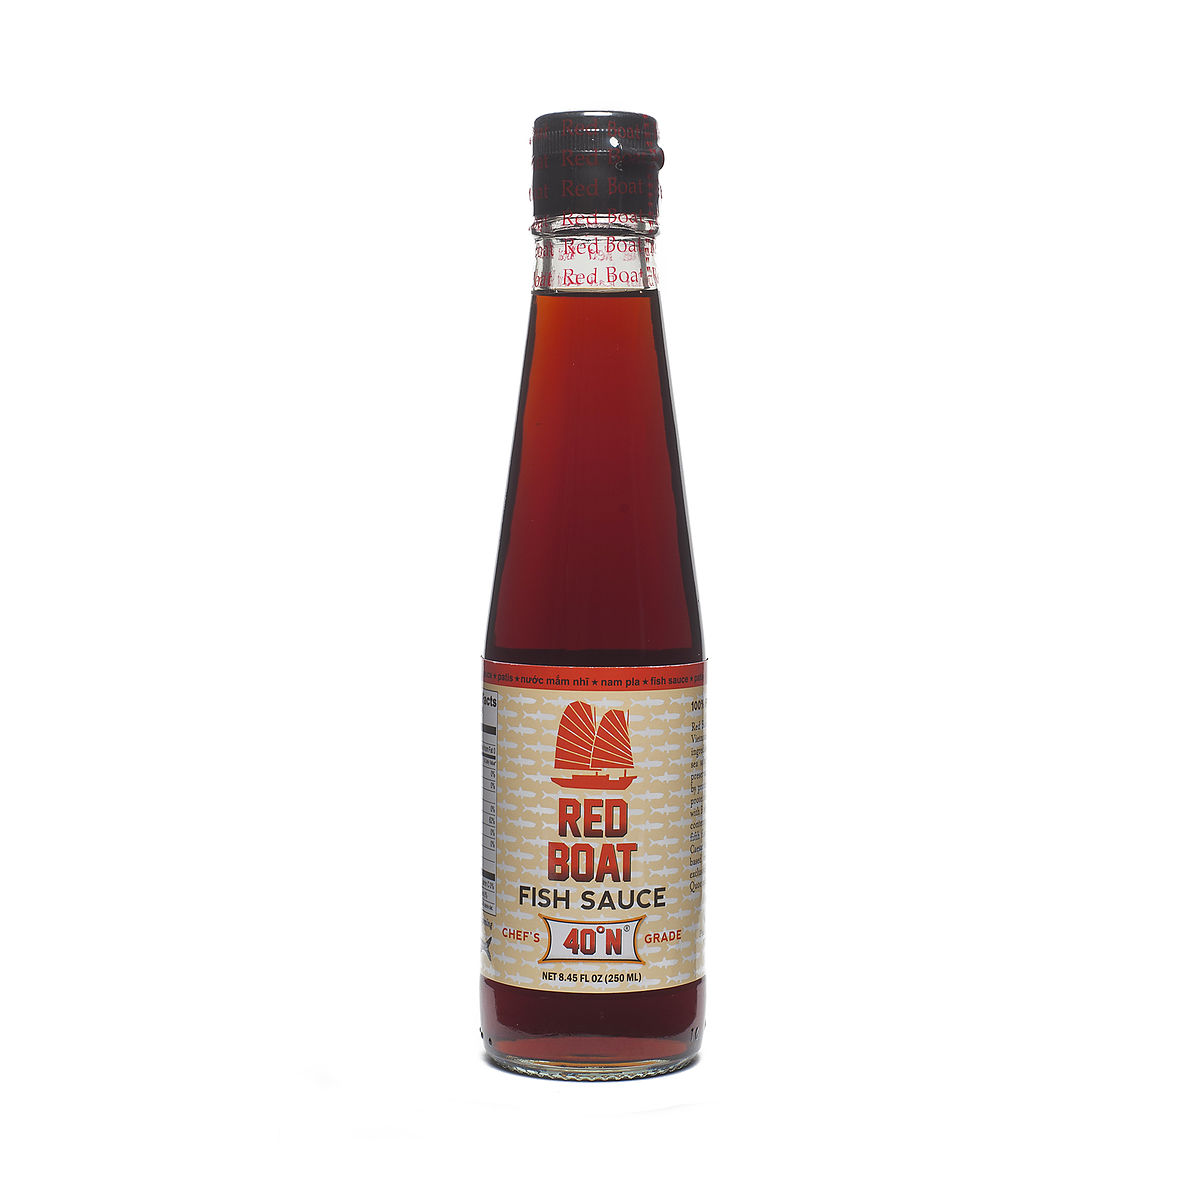 Red boat fish sauce fish sauce thrive market for Is fish sauce gluten free